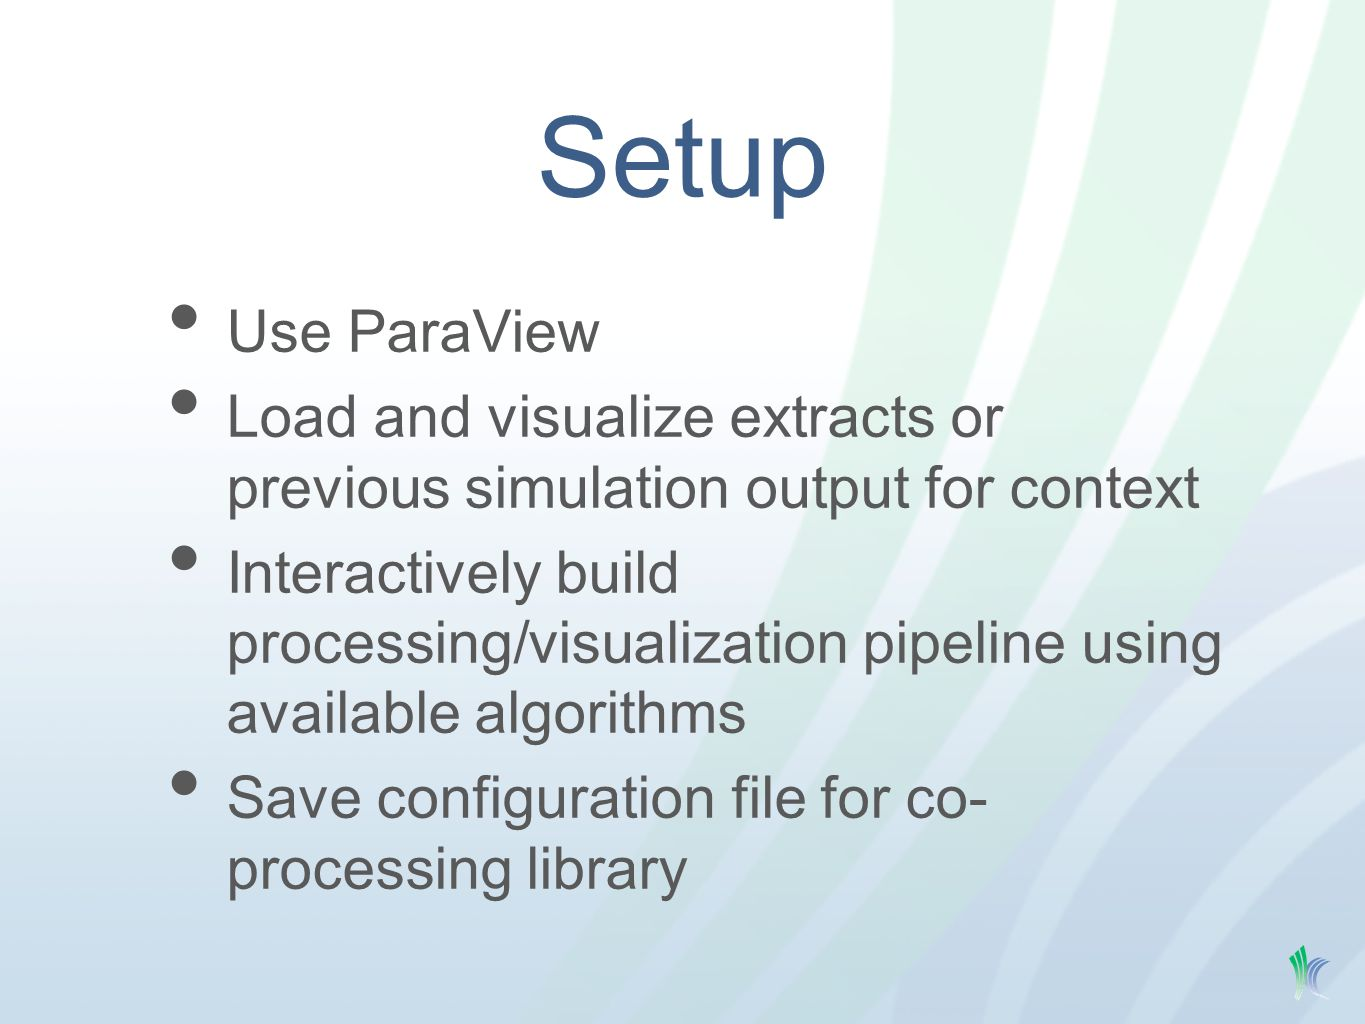 Setup Use ParaView Load and visualize extracts or previous simulation output for context Interactively build processing/visualization pipeline using available algorithms Save configuration file for co- processing library